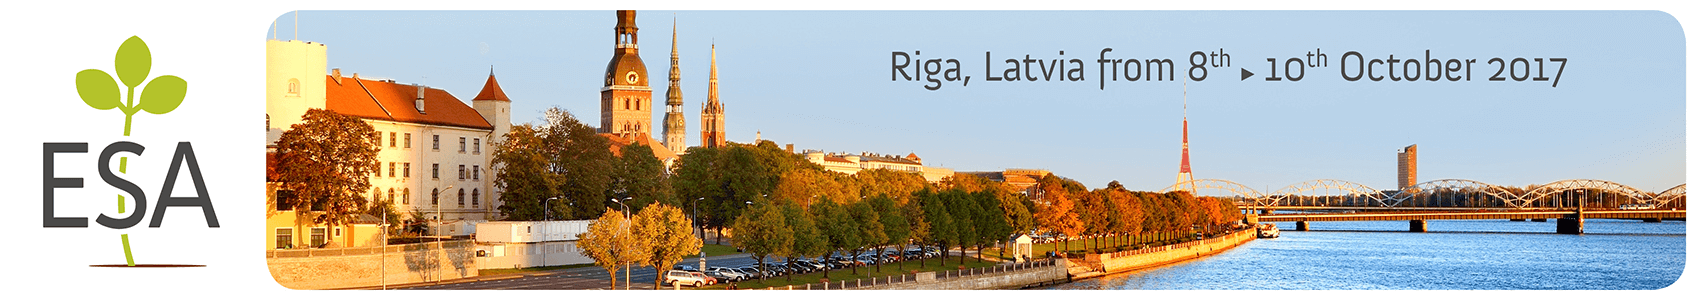 ESA Annual Meeting 2017 - Riga - Sunday 8  › Tuesday 10 October 2017